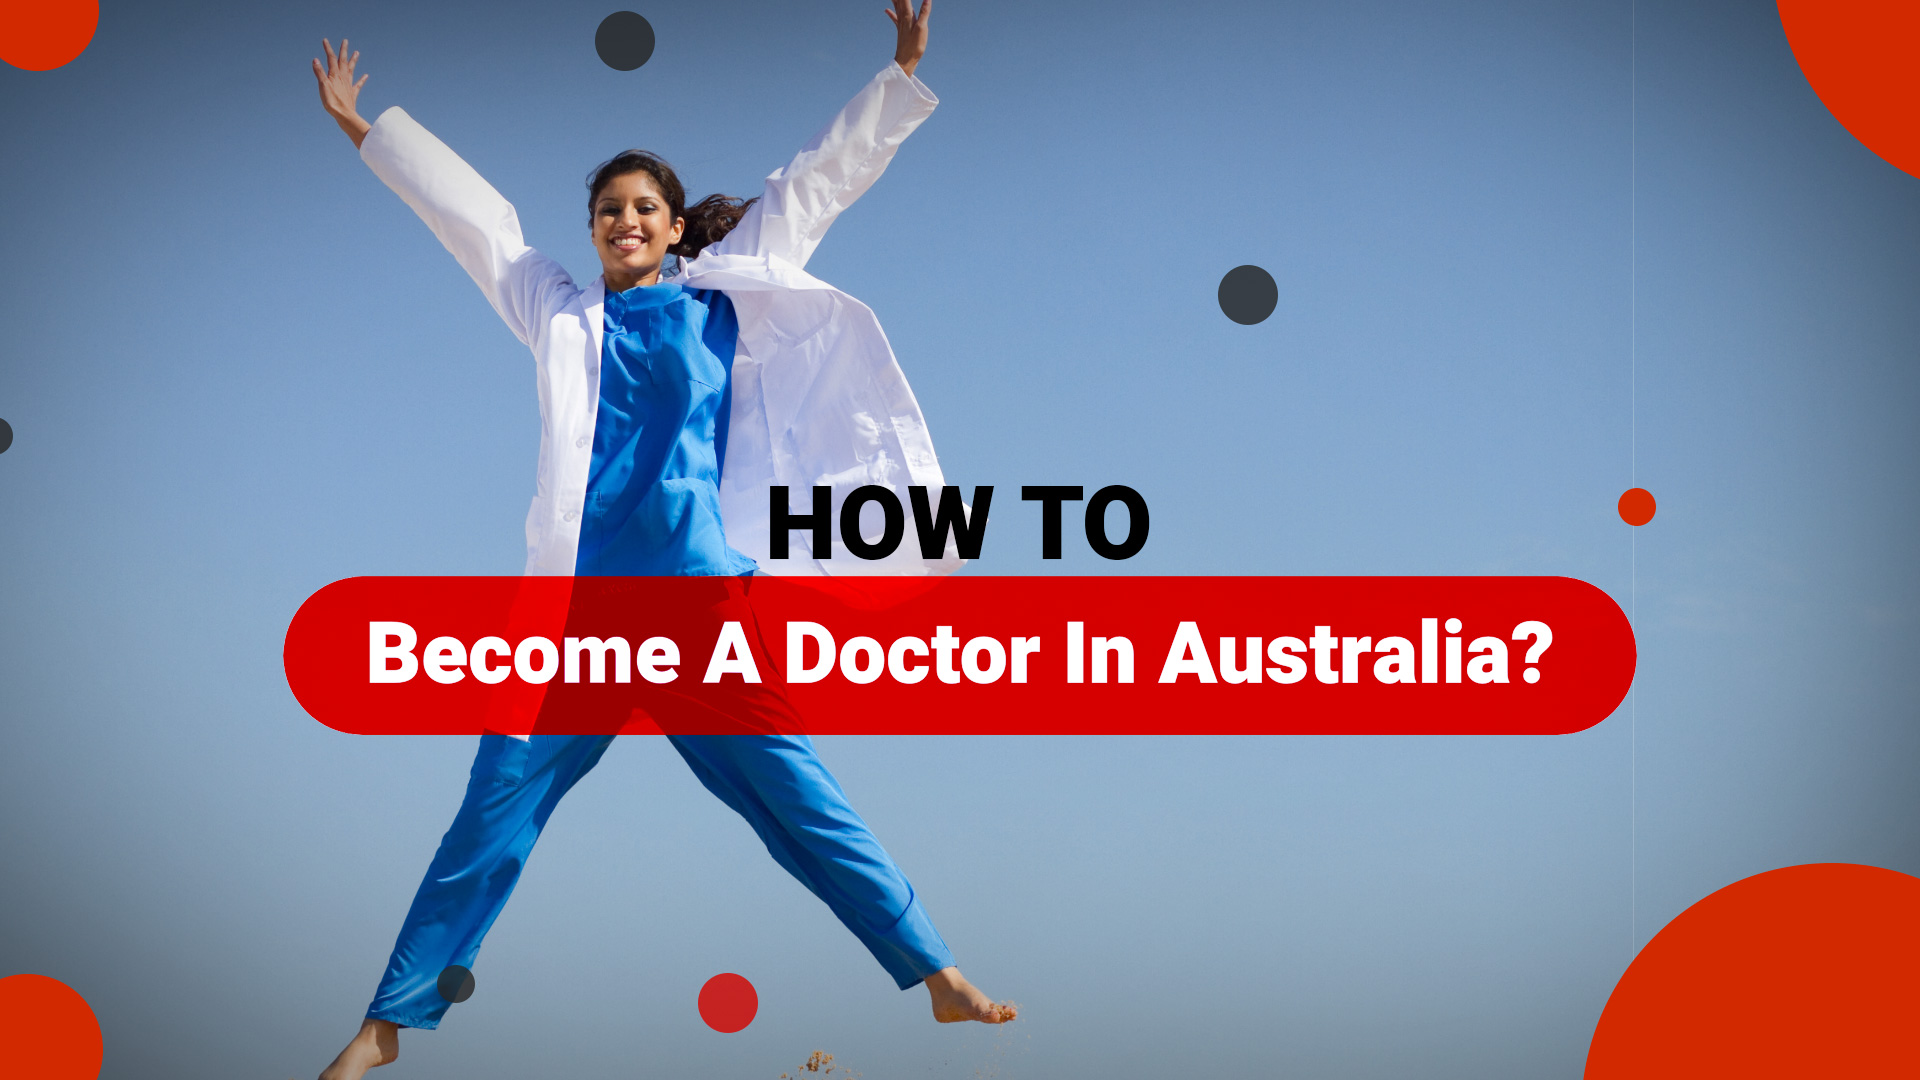 How to become a Doctor in Australia